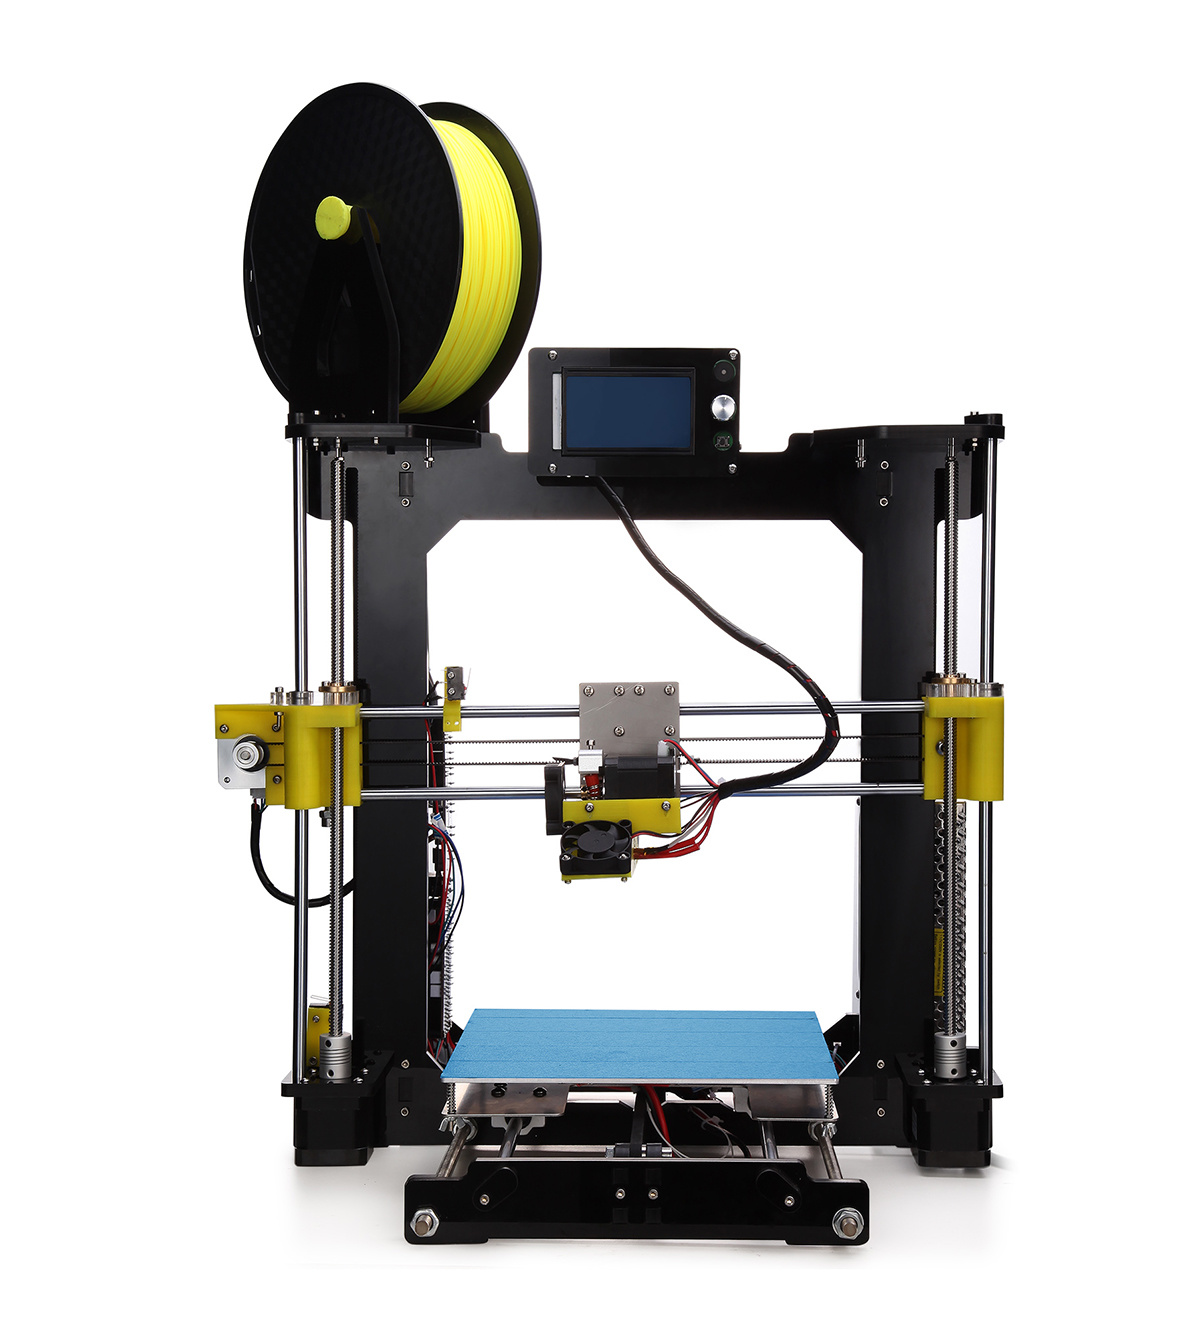 New Version Reprap Prusa I3 Desktop Fdm DIY 3D Printer